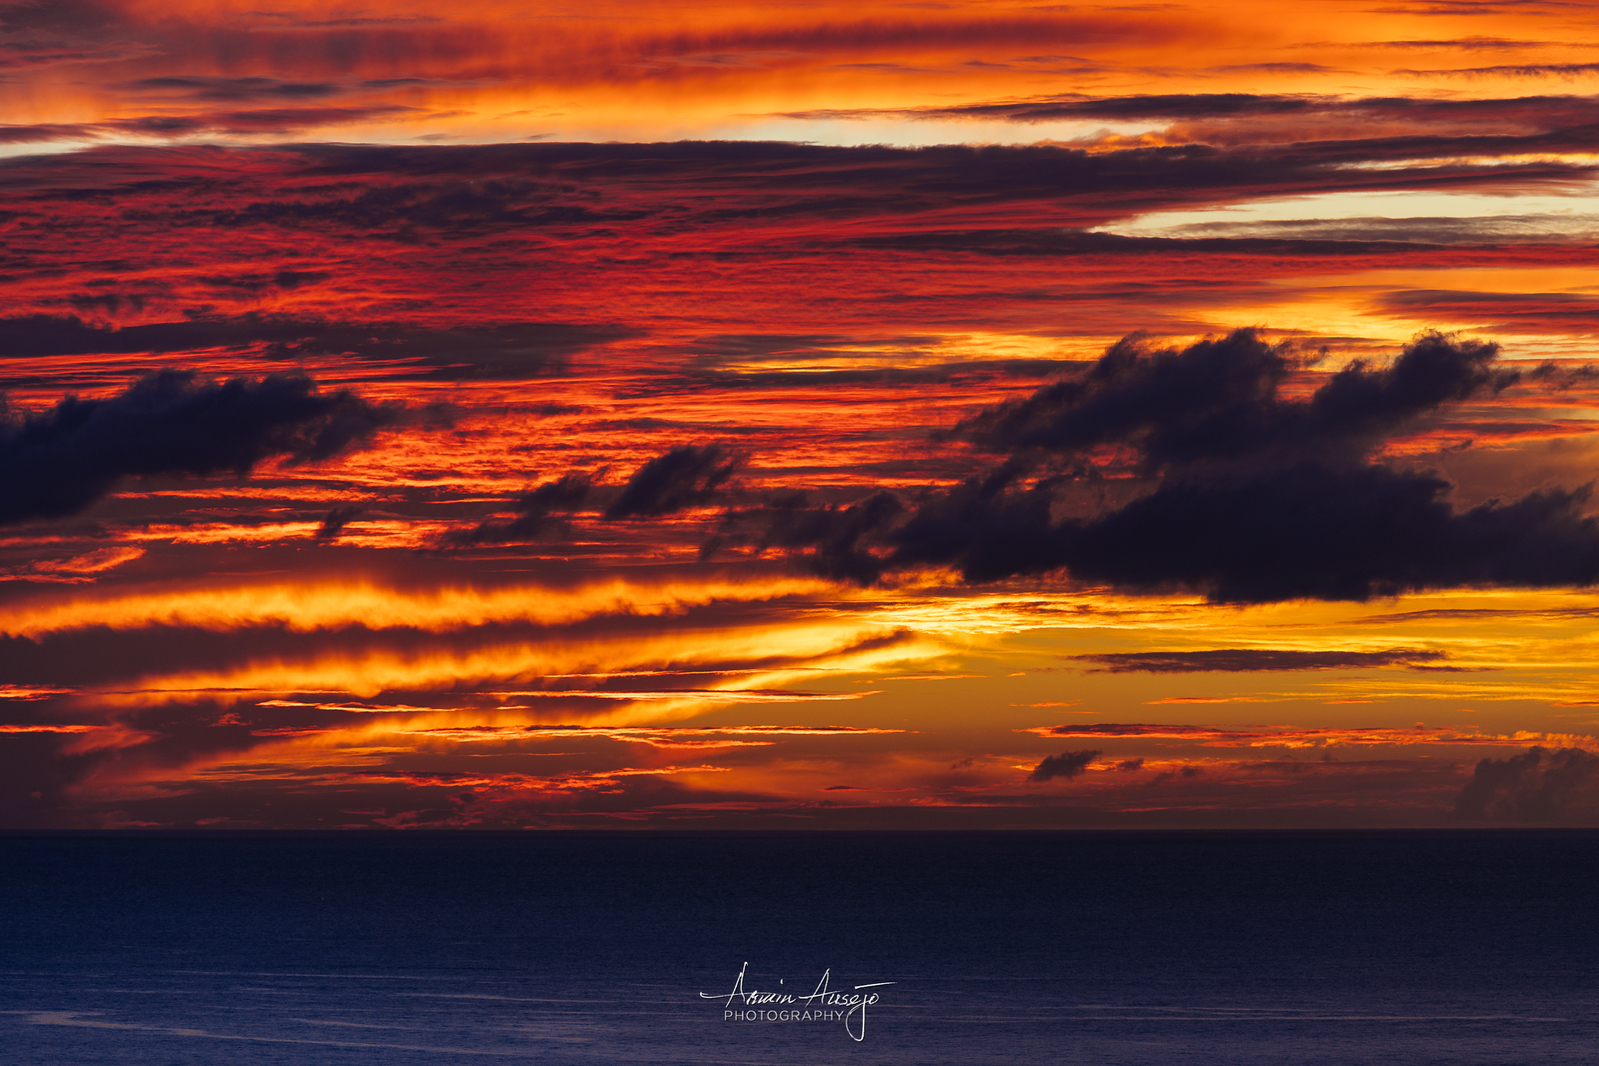 North Shore sunset clouds with the Nikkor 300mm f/4E PF ED VR